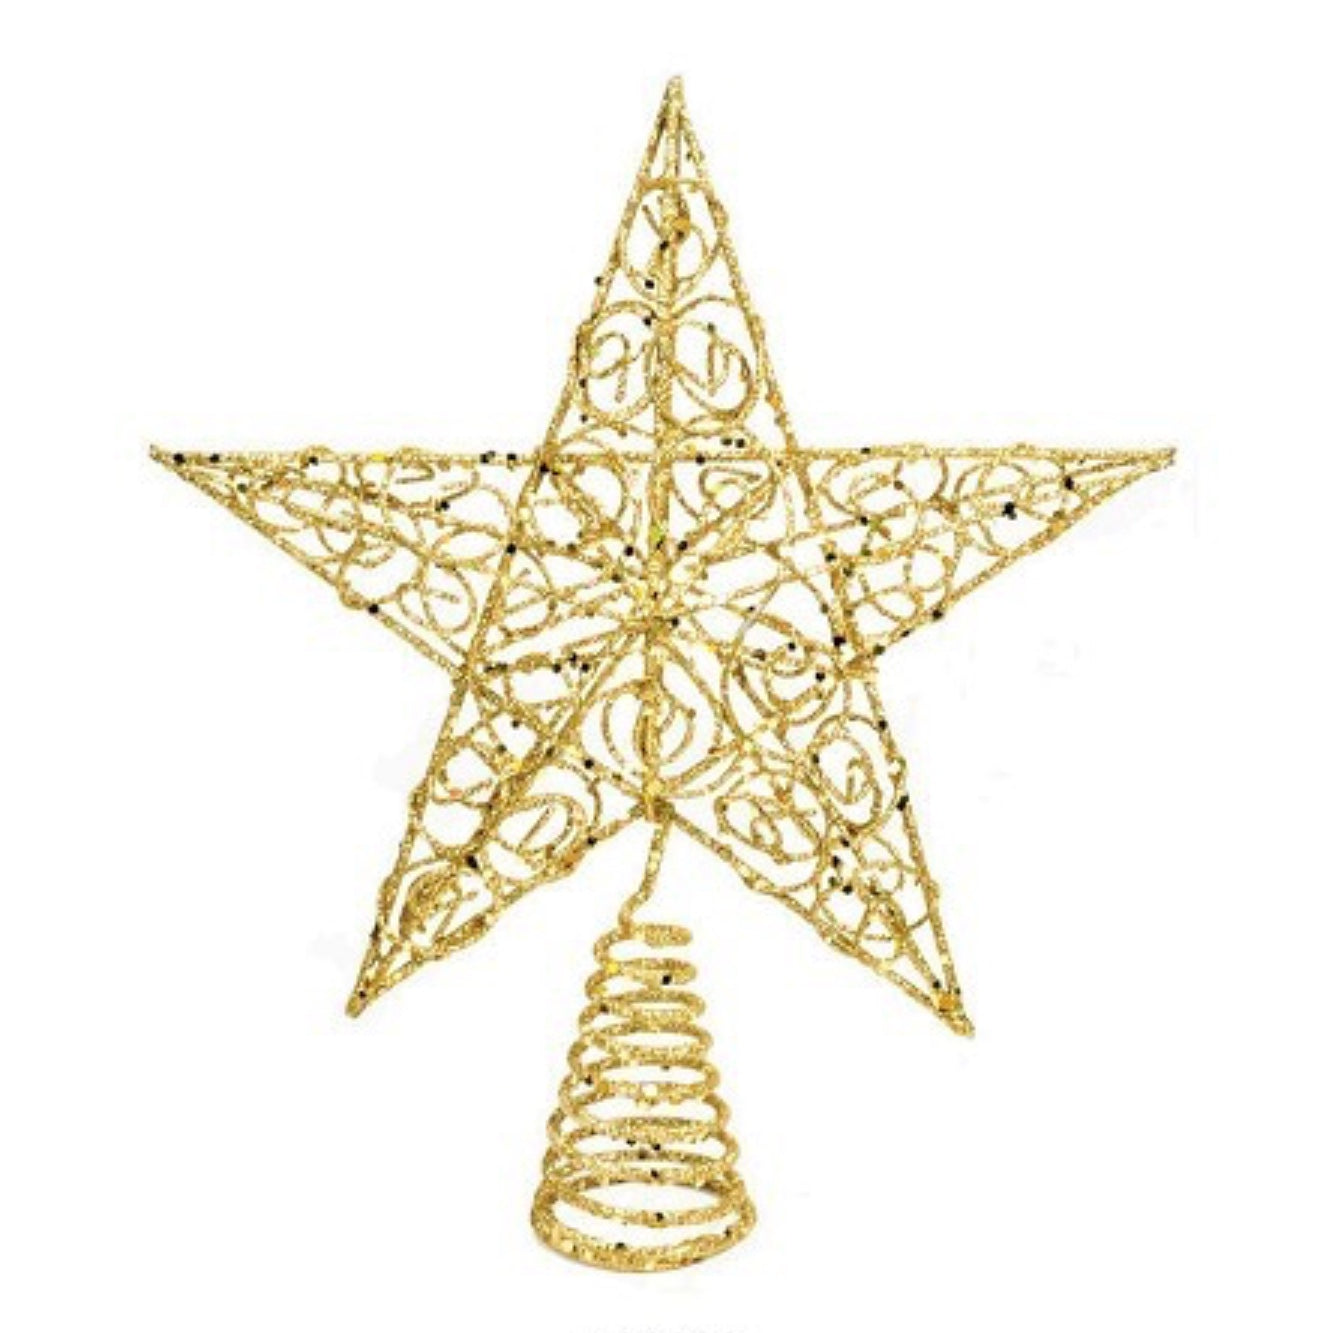 Gold Glittered Wire Christmas Tree Topper with Scrolls